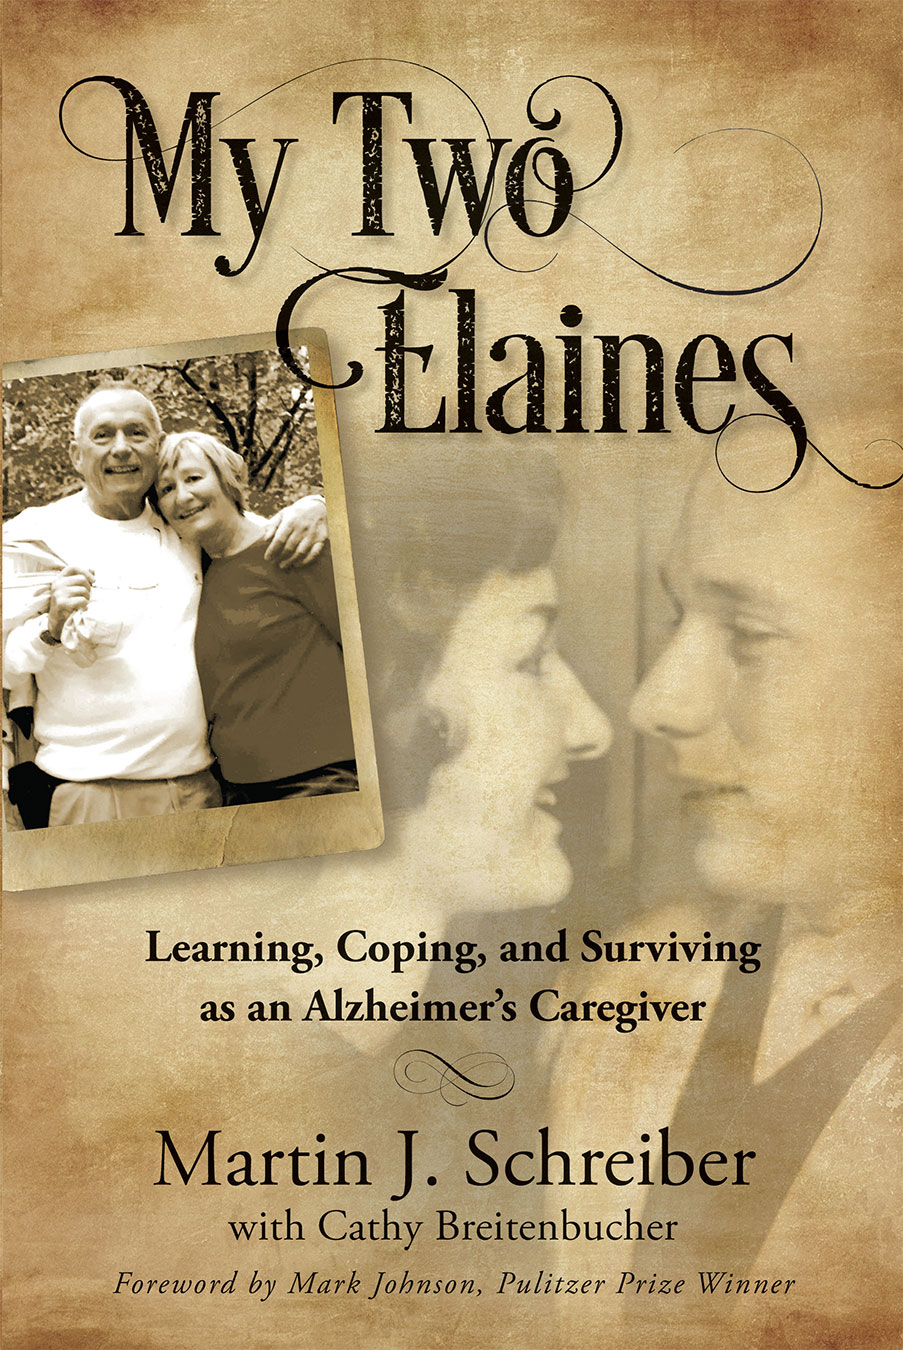 """My Two Elaine's"" Learning, Coping and Surviving as an Alzheimer's Caregiver. By Martin J. Schreiber"